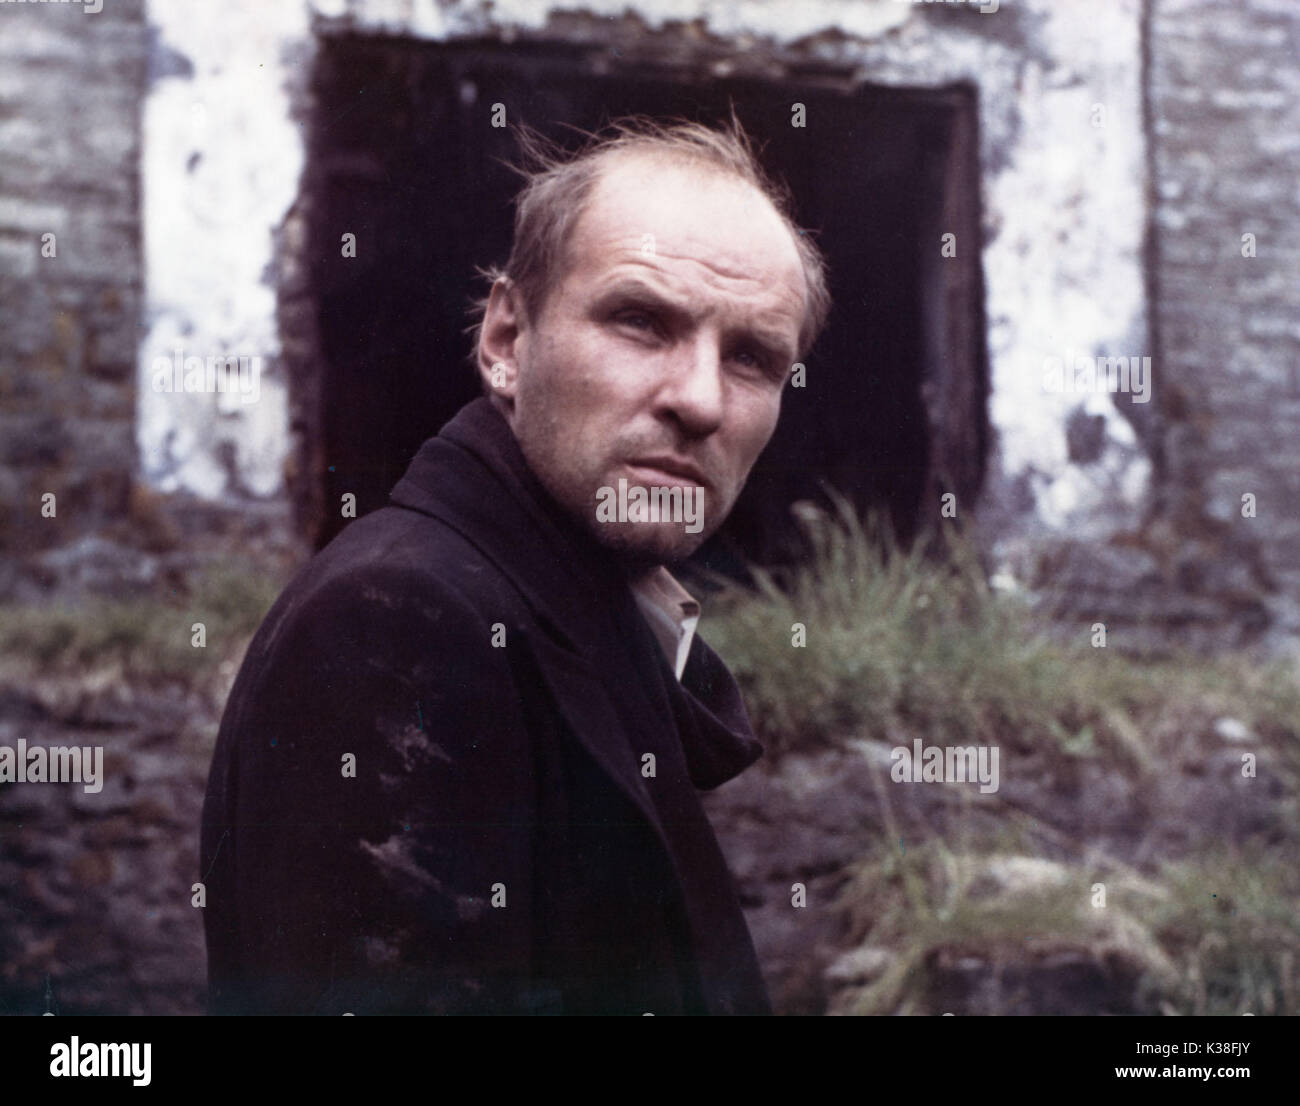 STALKER ANATOLI SOLONITSYN A MOSFILM PRODUCTION     Date: 1979 - Stock Image